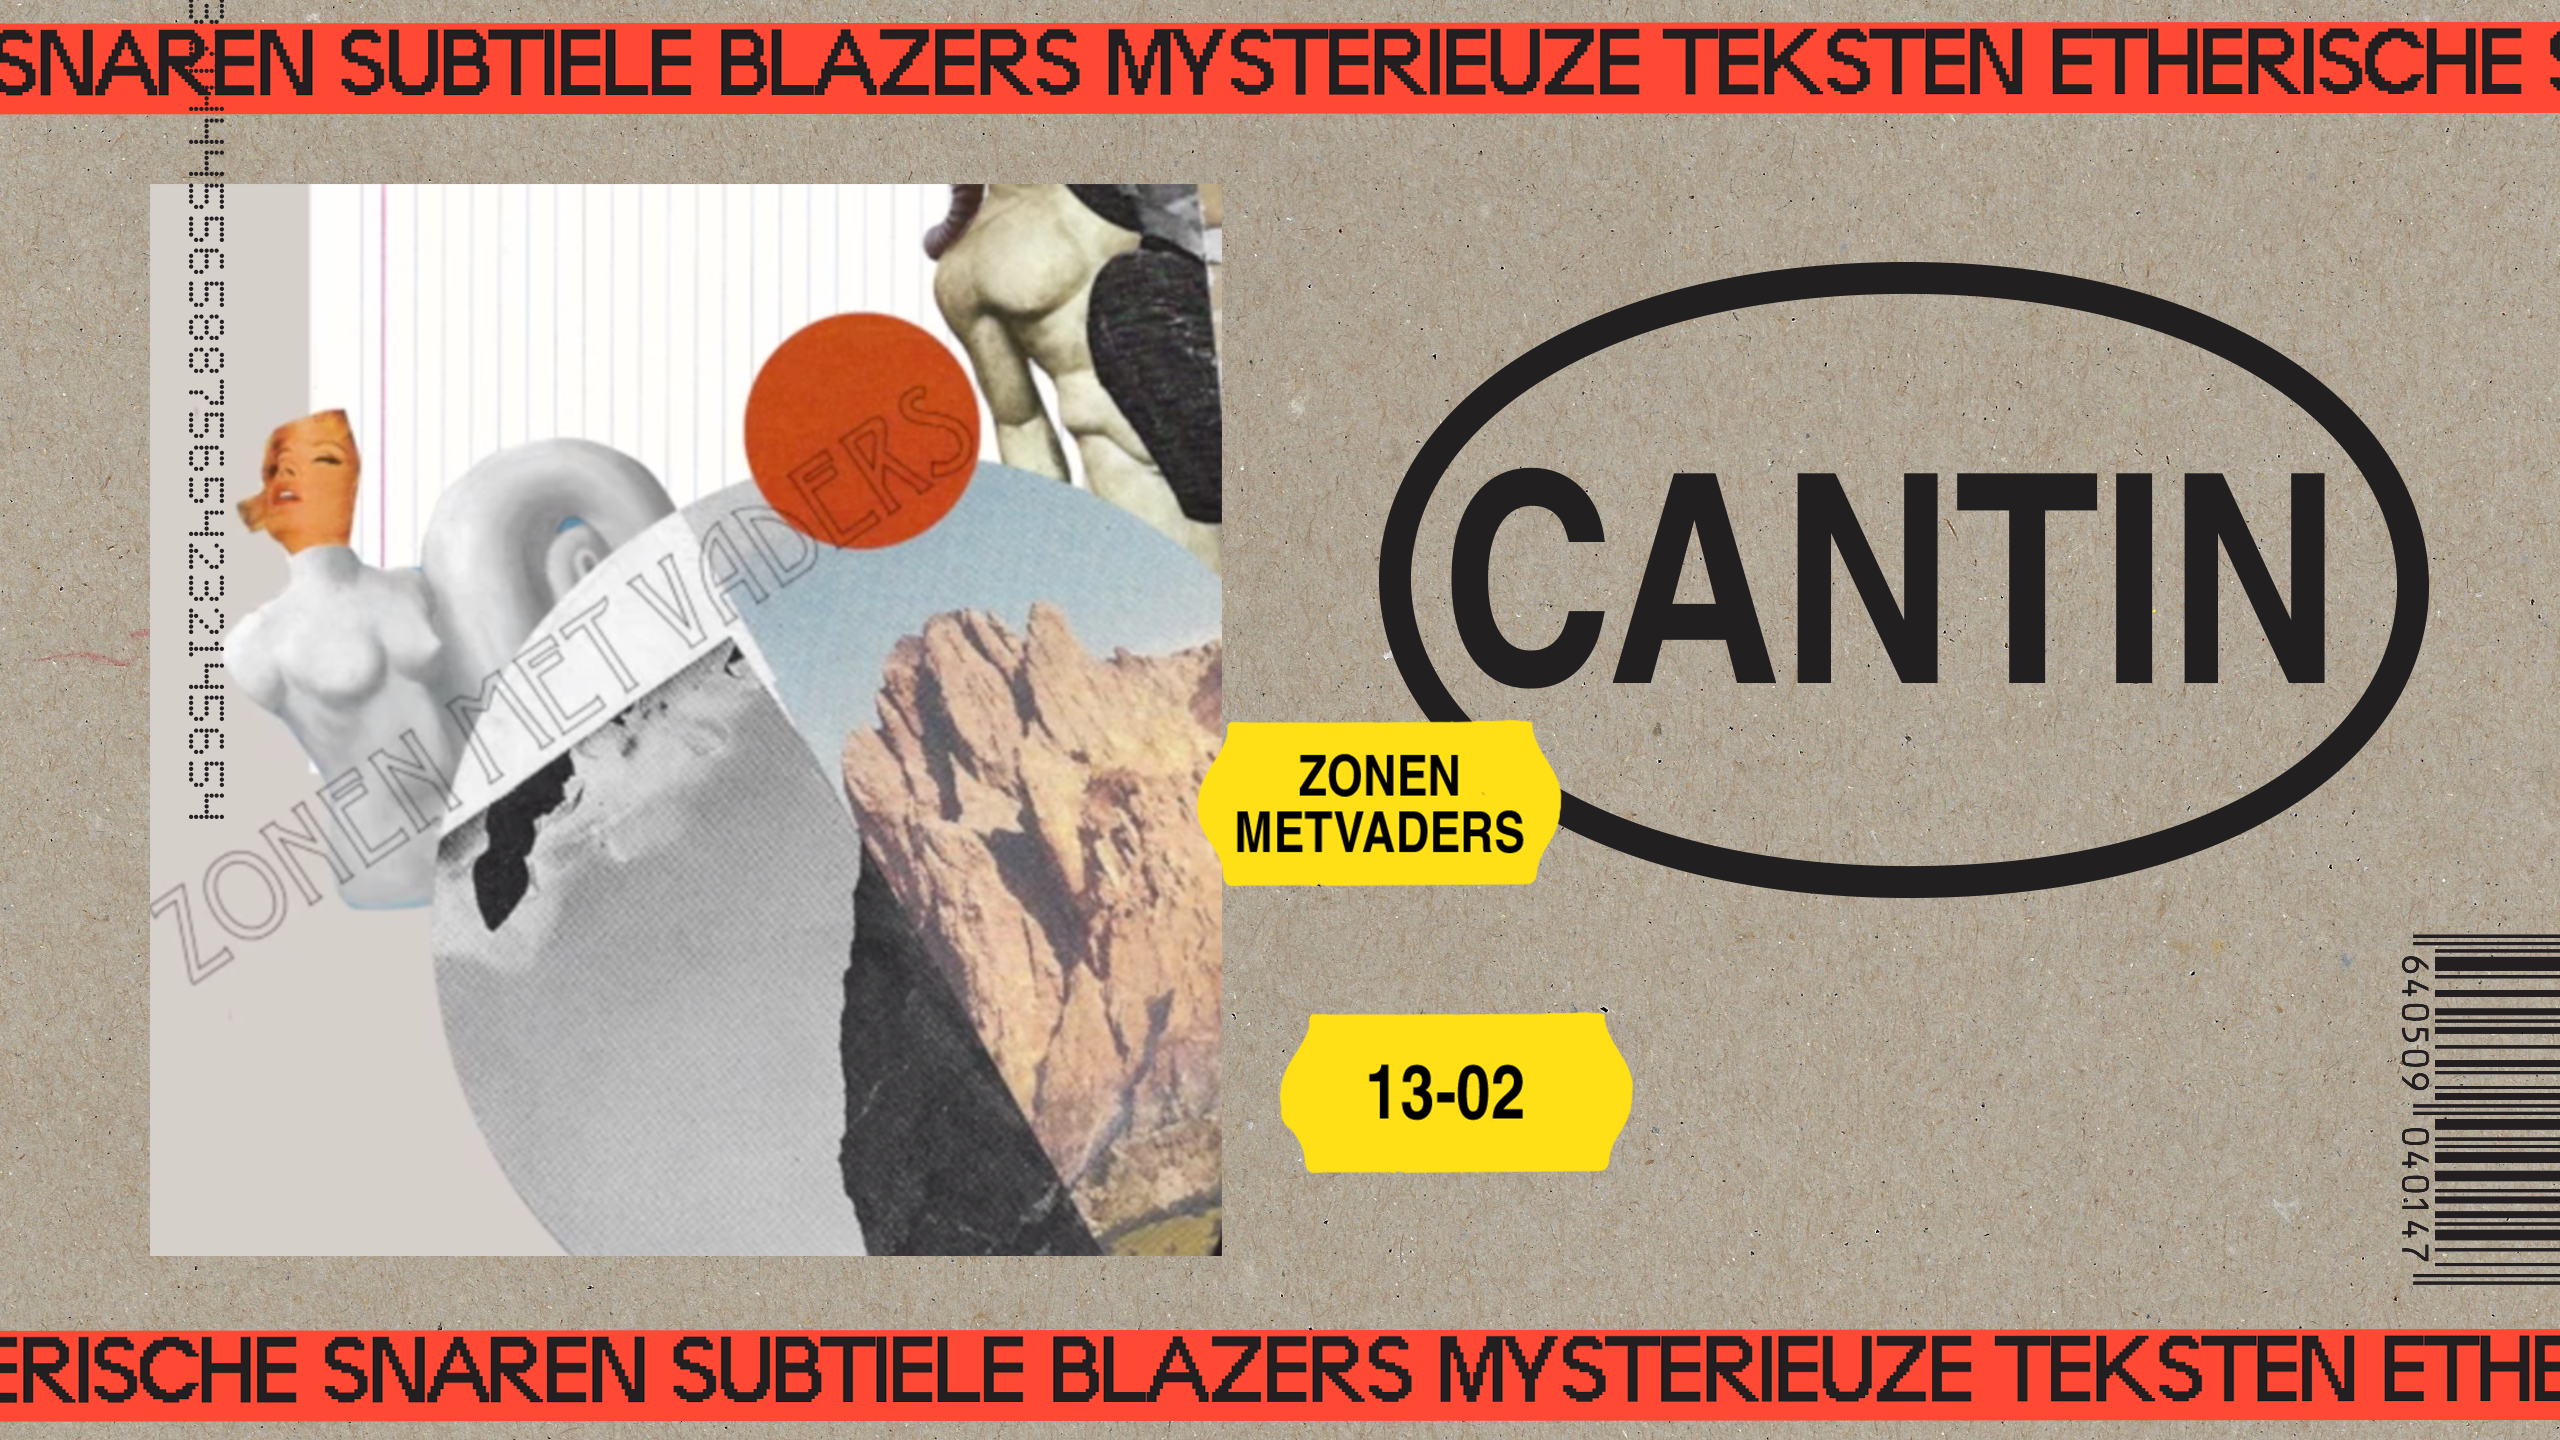 Cantin event